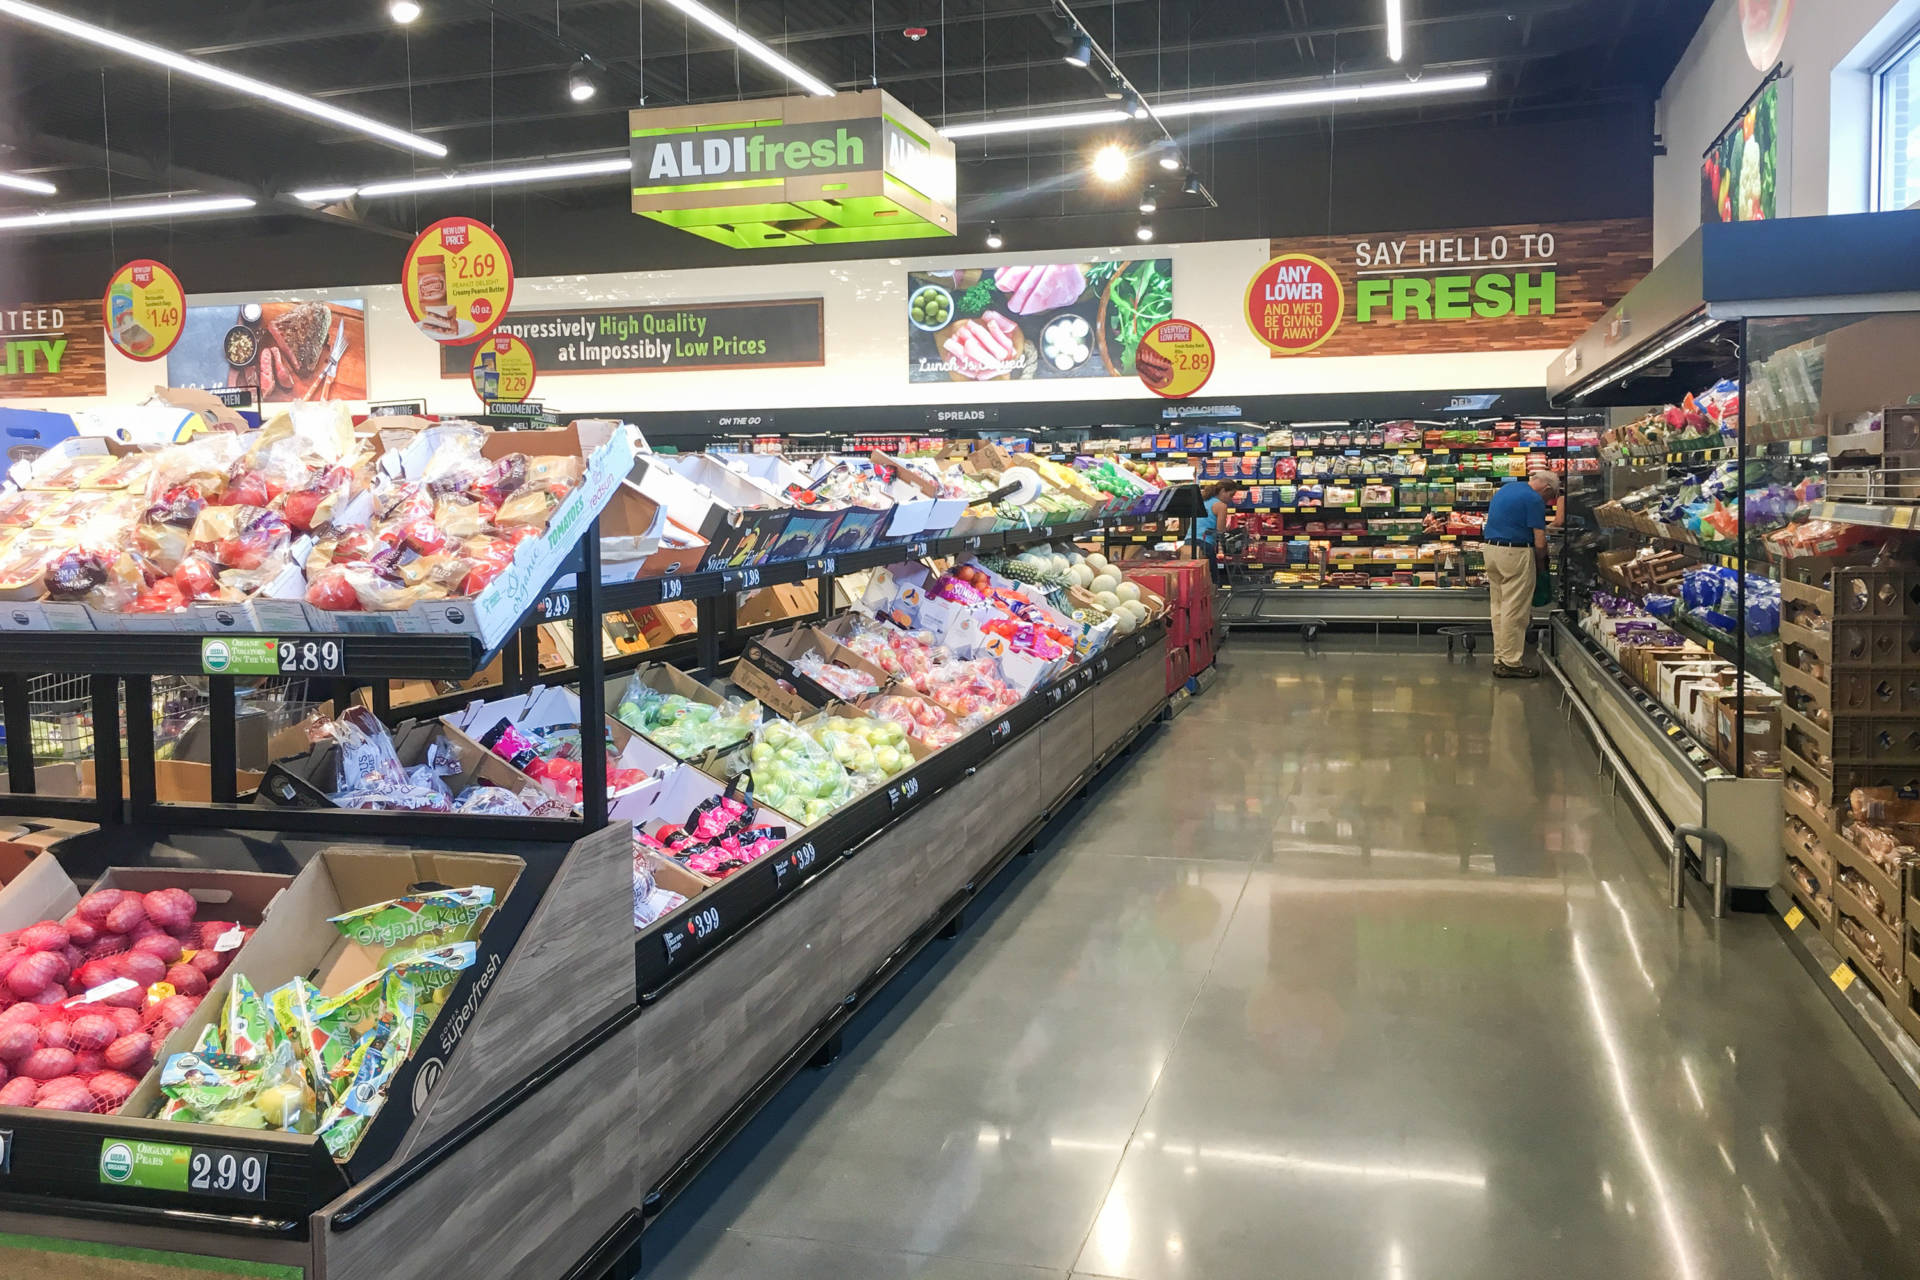 Aldi, which has been in the U.S. since the 1970s, has been updating its look and product selection, adding more fresh produce, among other things.